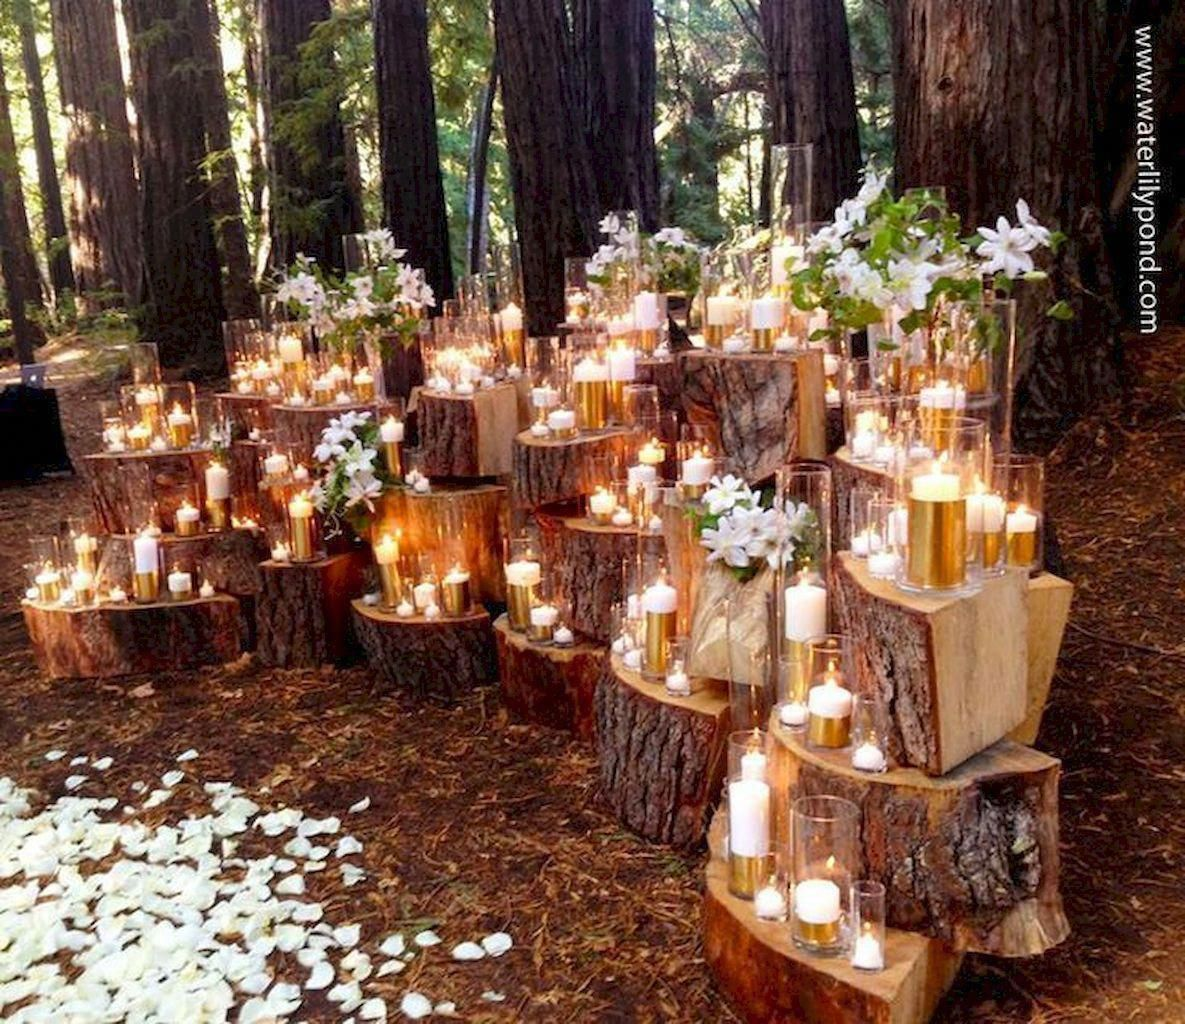 Low Budget Wedding Decorations: Romantic Weddings Post 9070761850